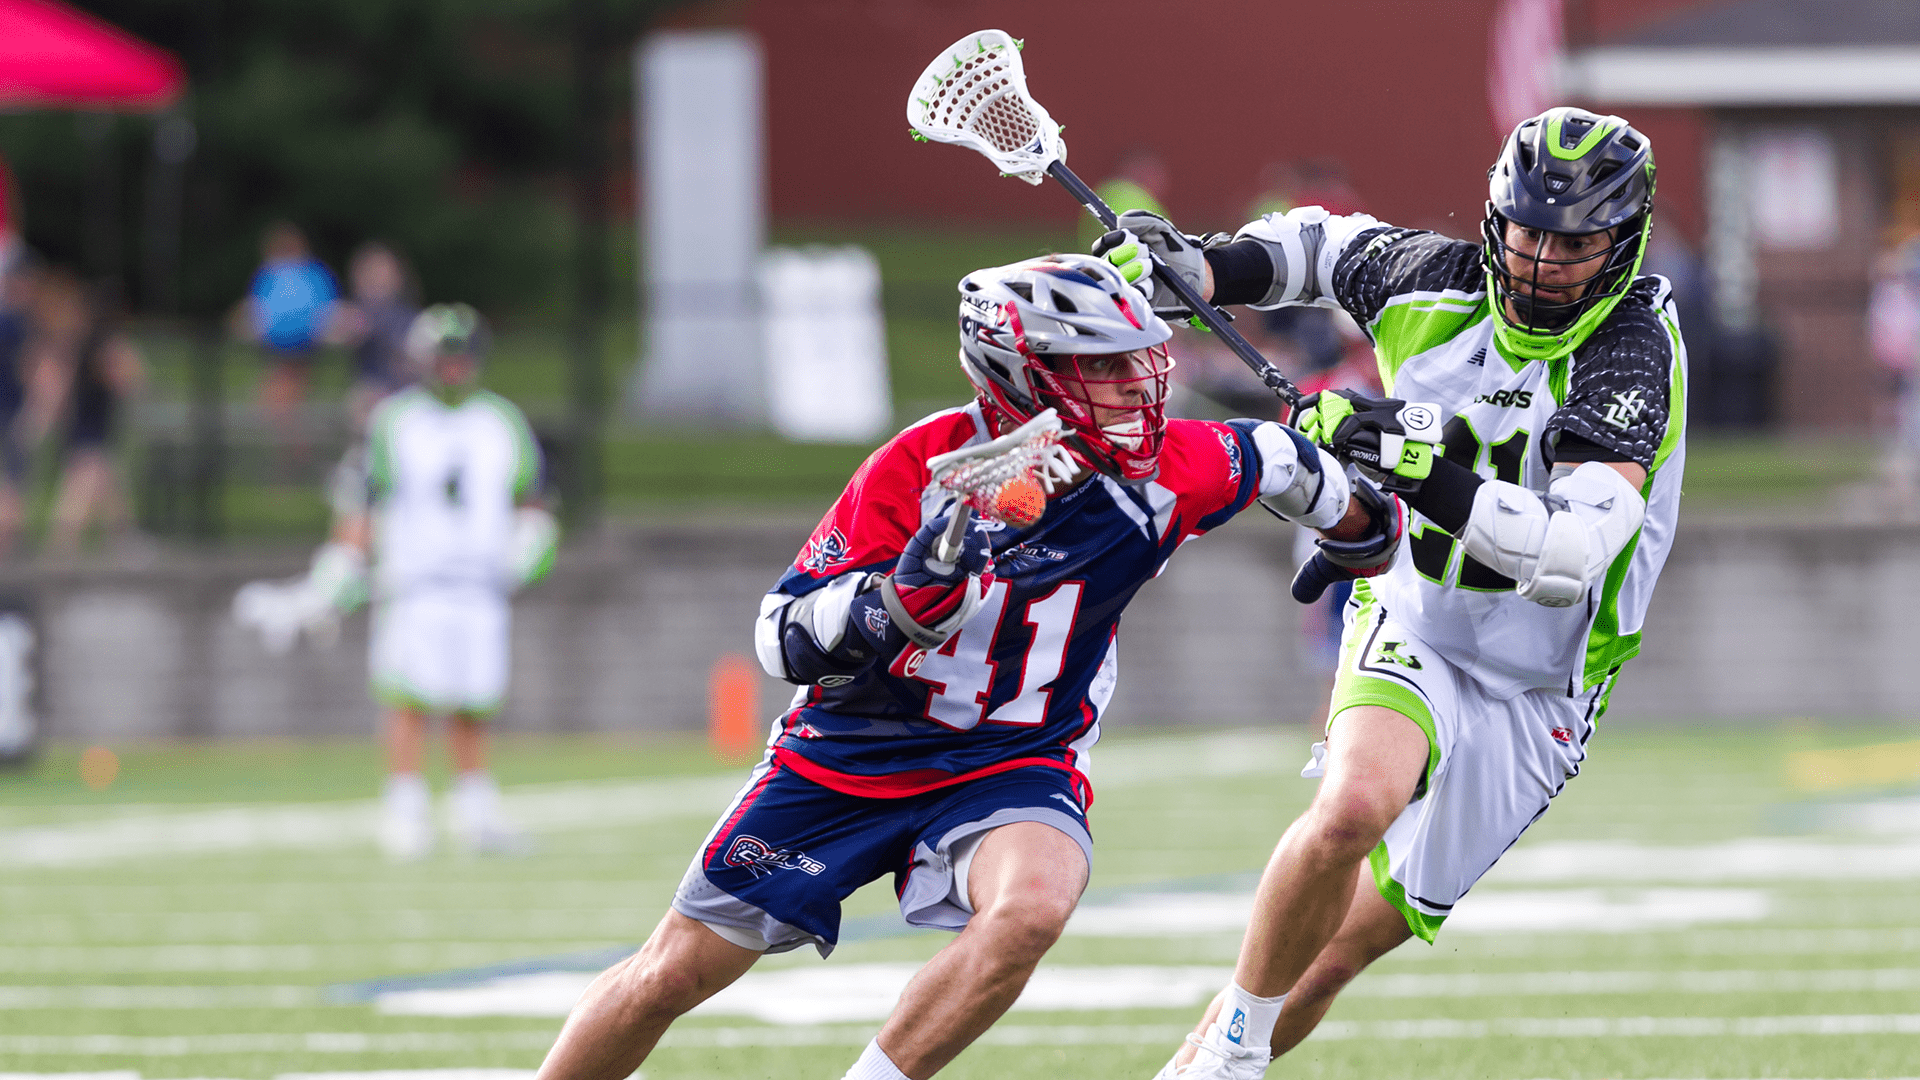 mll week 4 boston cannons new york lizards atlanta blaze dallas rattlers